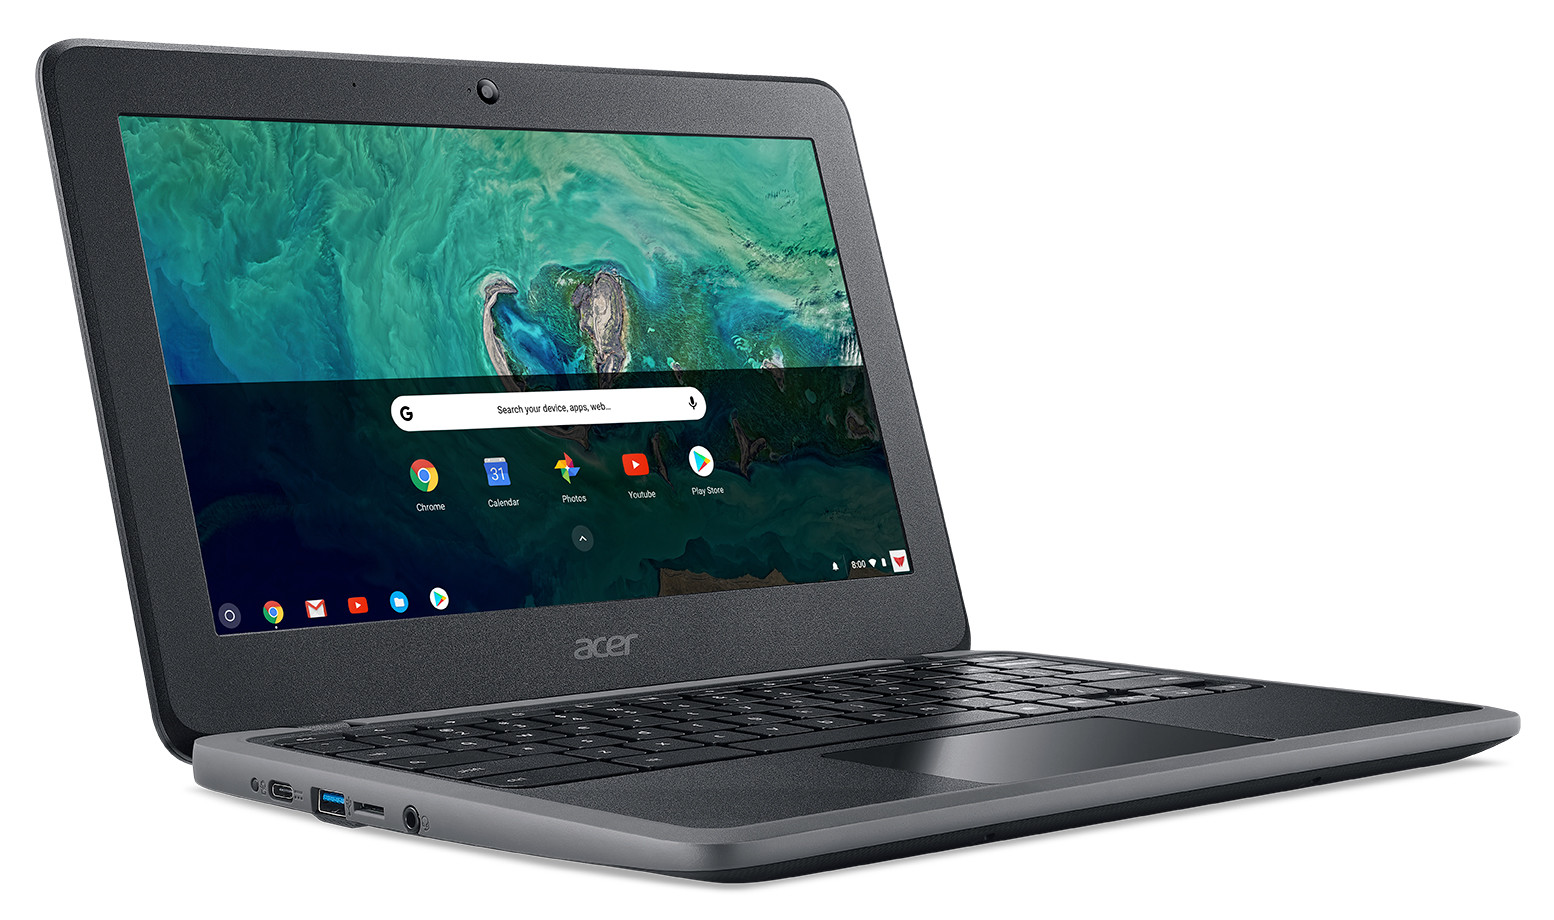 Acer Launches New Chromebox, Chromebook Laptops